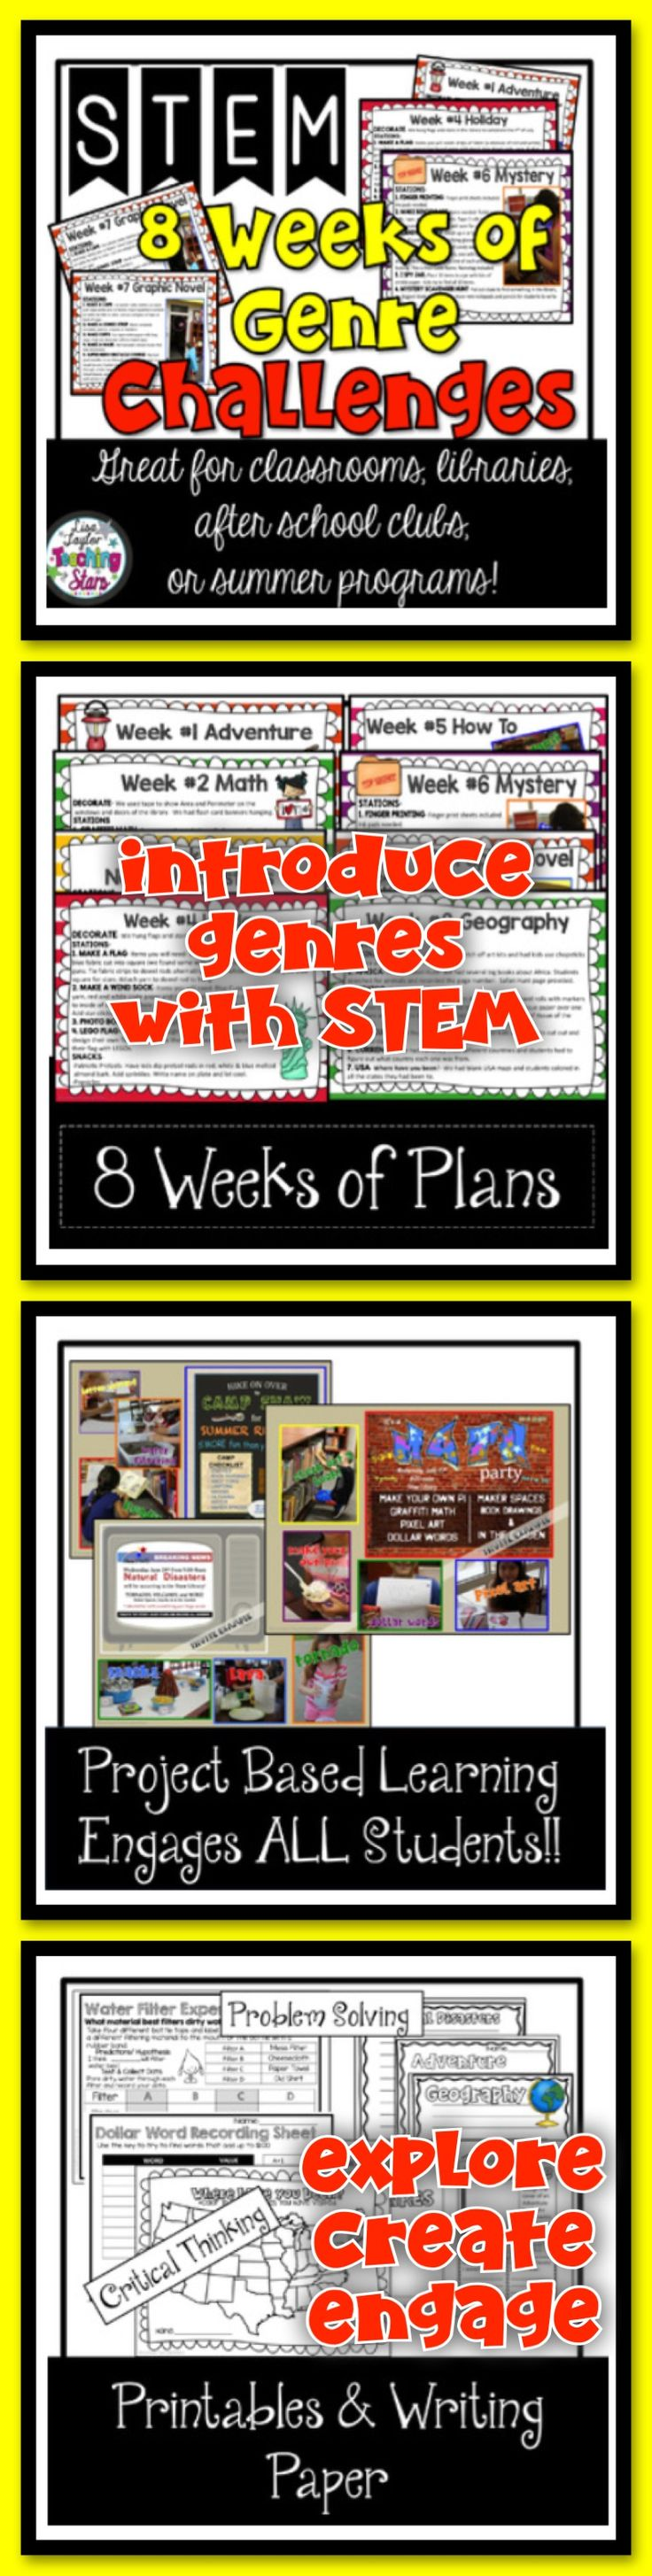 STEM 8 Weeks of Genre Challenges is a packet of plans and activities for 8 Weeks of Genre Challenges. Students will love learning about the different book genres as they explore, create, and engage in themed activities. Your students will want to try different genres after each week of fun activities! This product is great for classrooms, libraries, after school clubs, or summer programs!